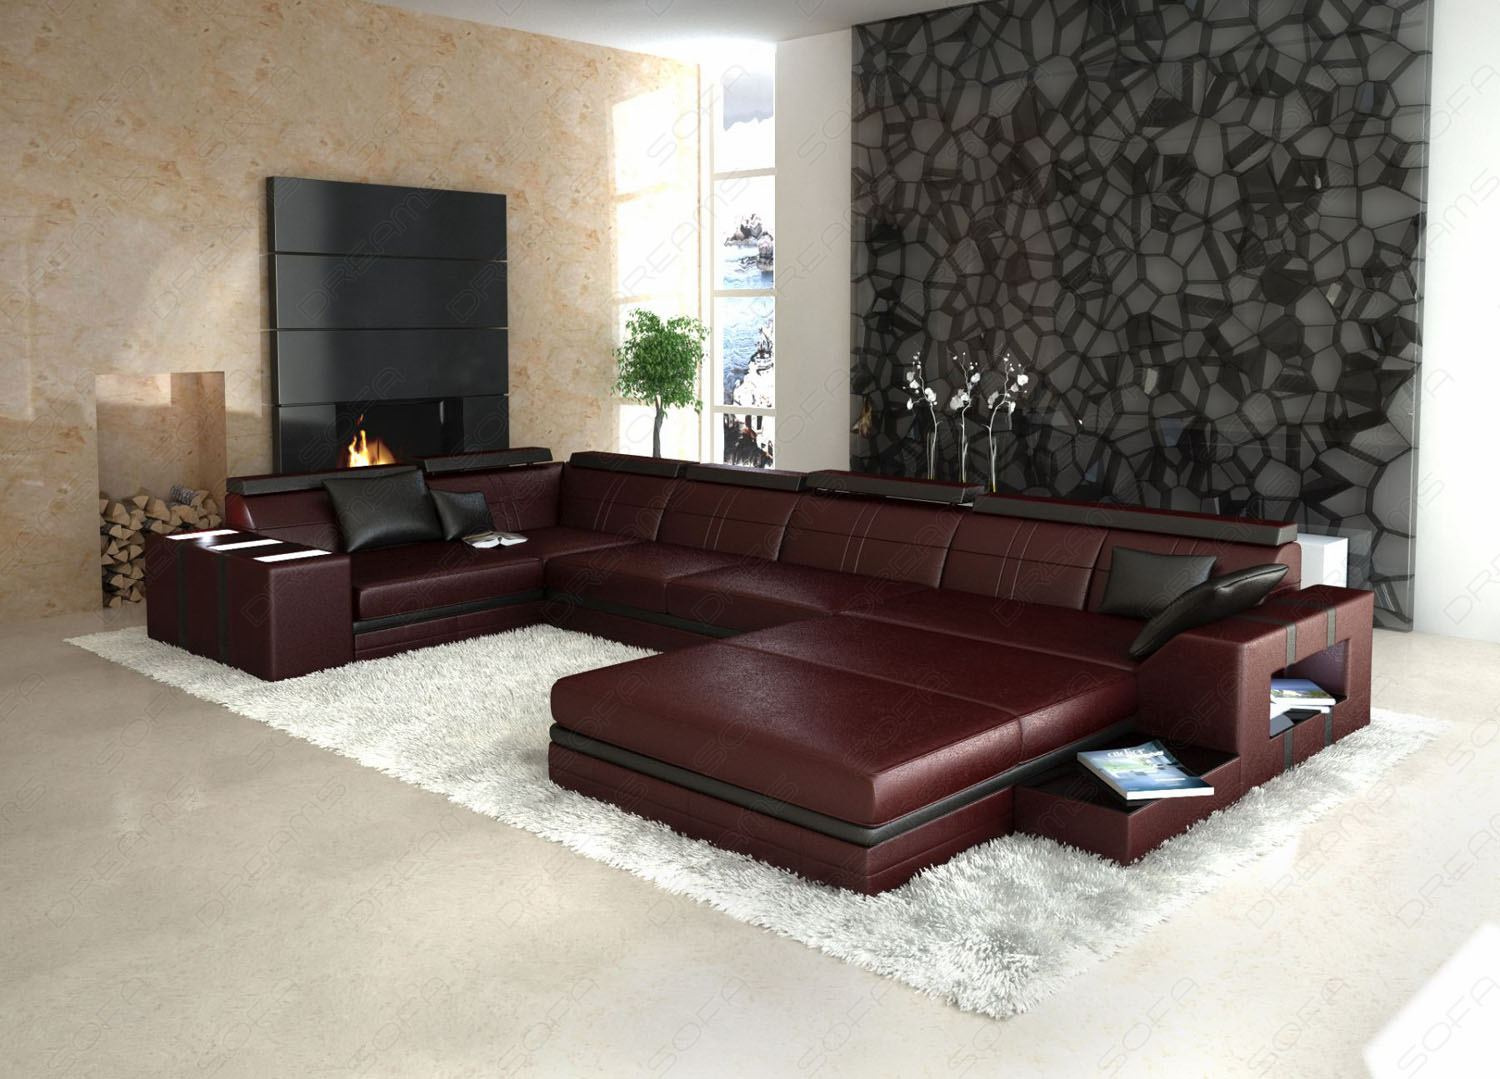 sofa u form federkern das beste aus wohndesign und m bel inspiration. Black Bedroom Furniture Sets. Home Design Ideas